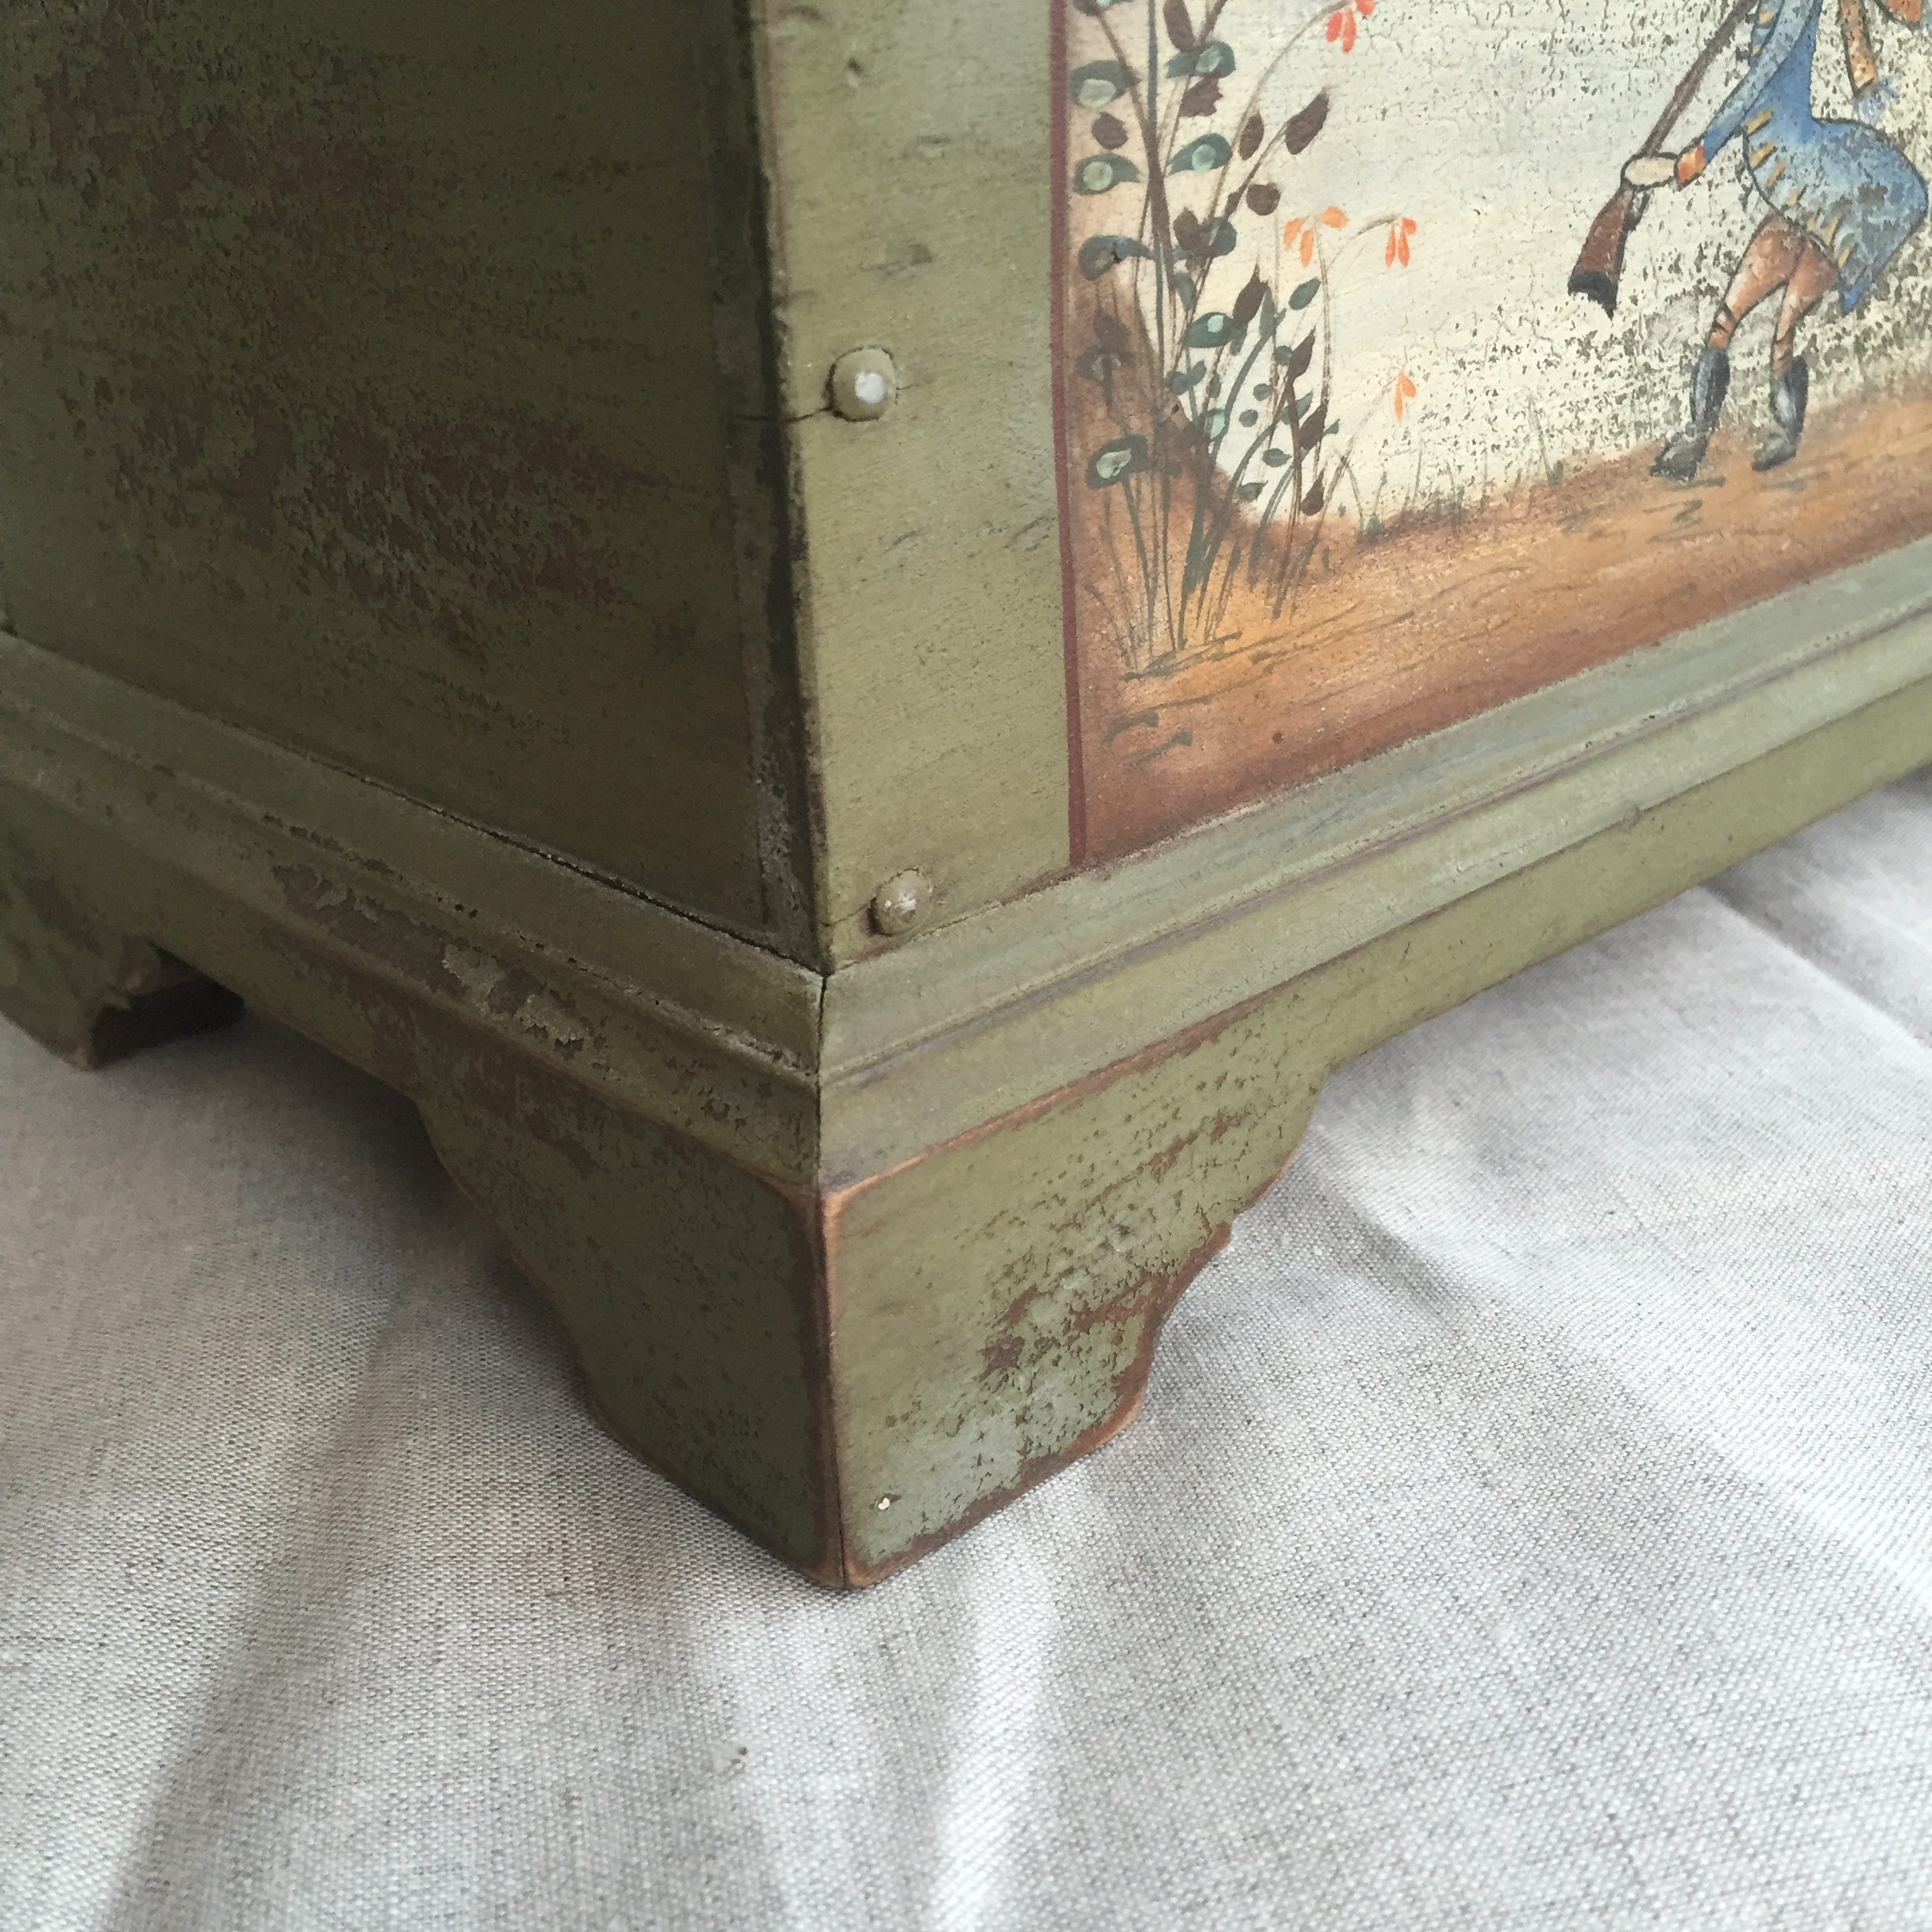 Green Keepsake box detail